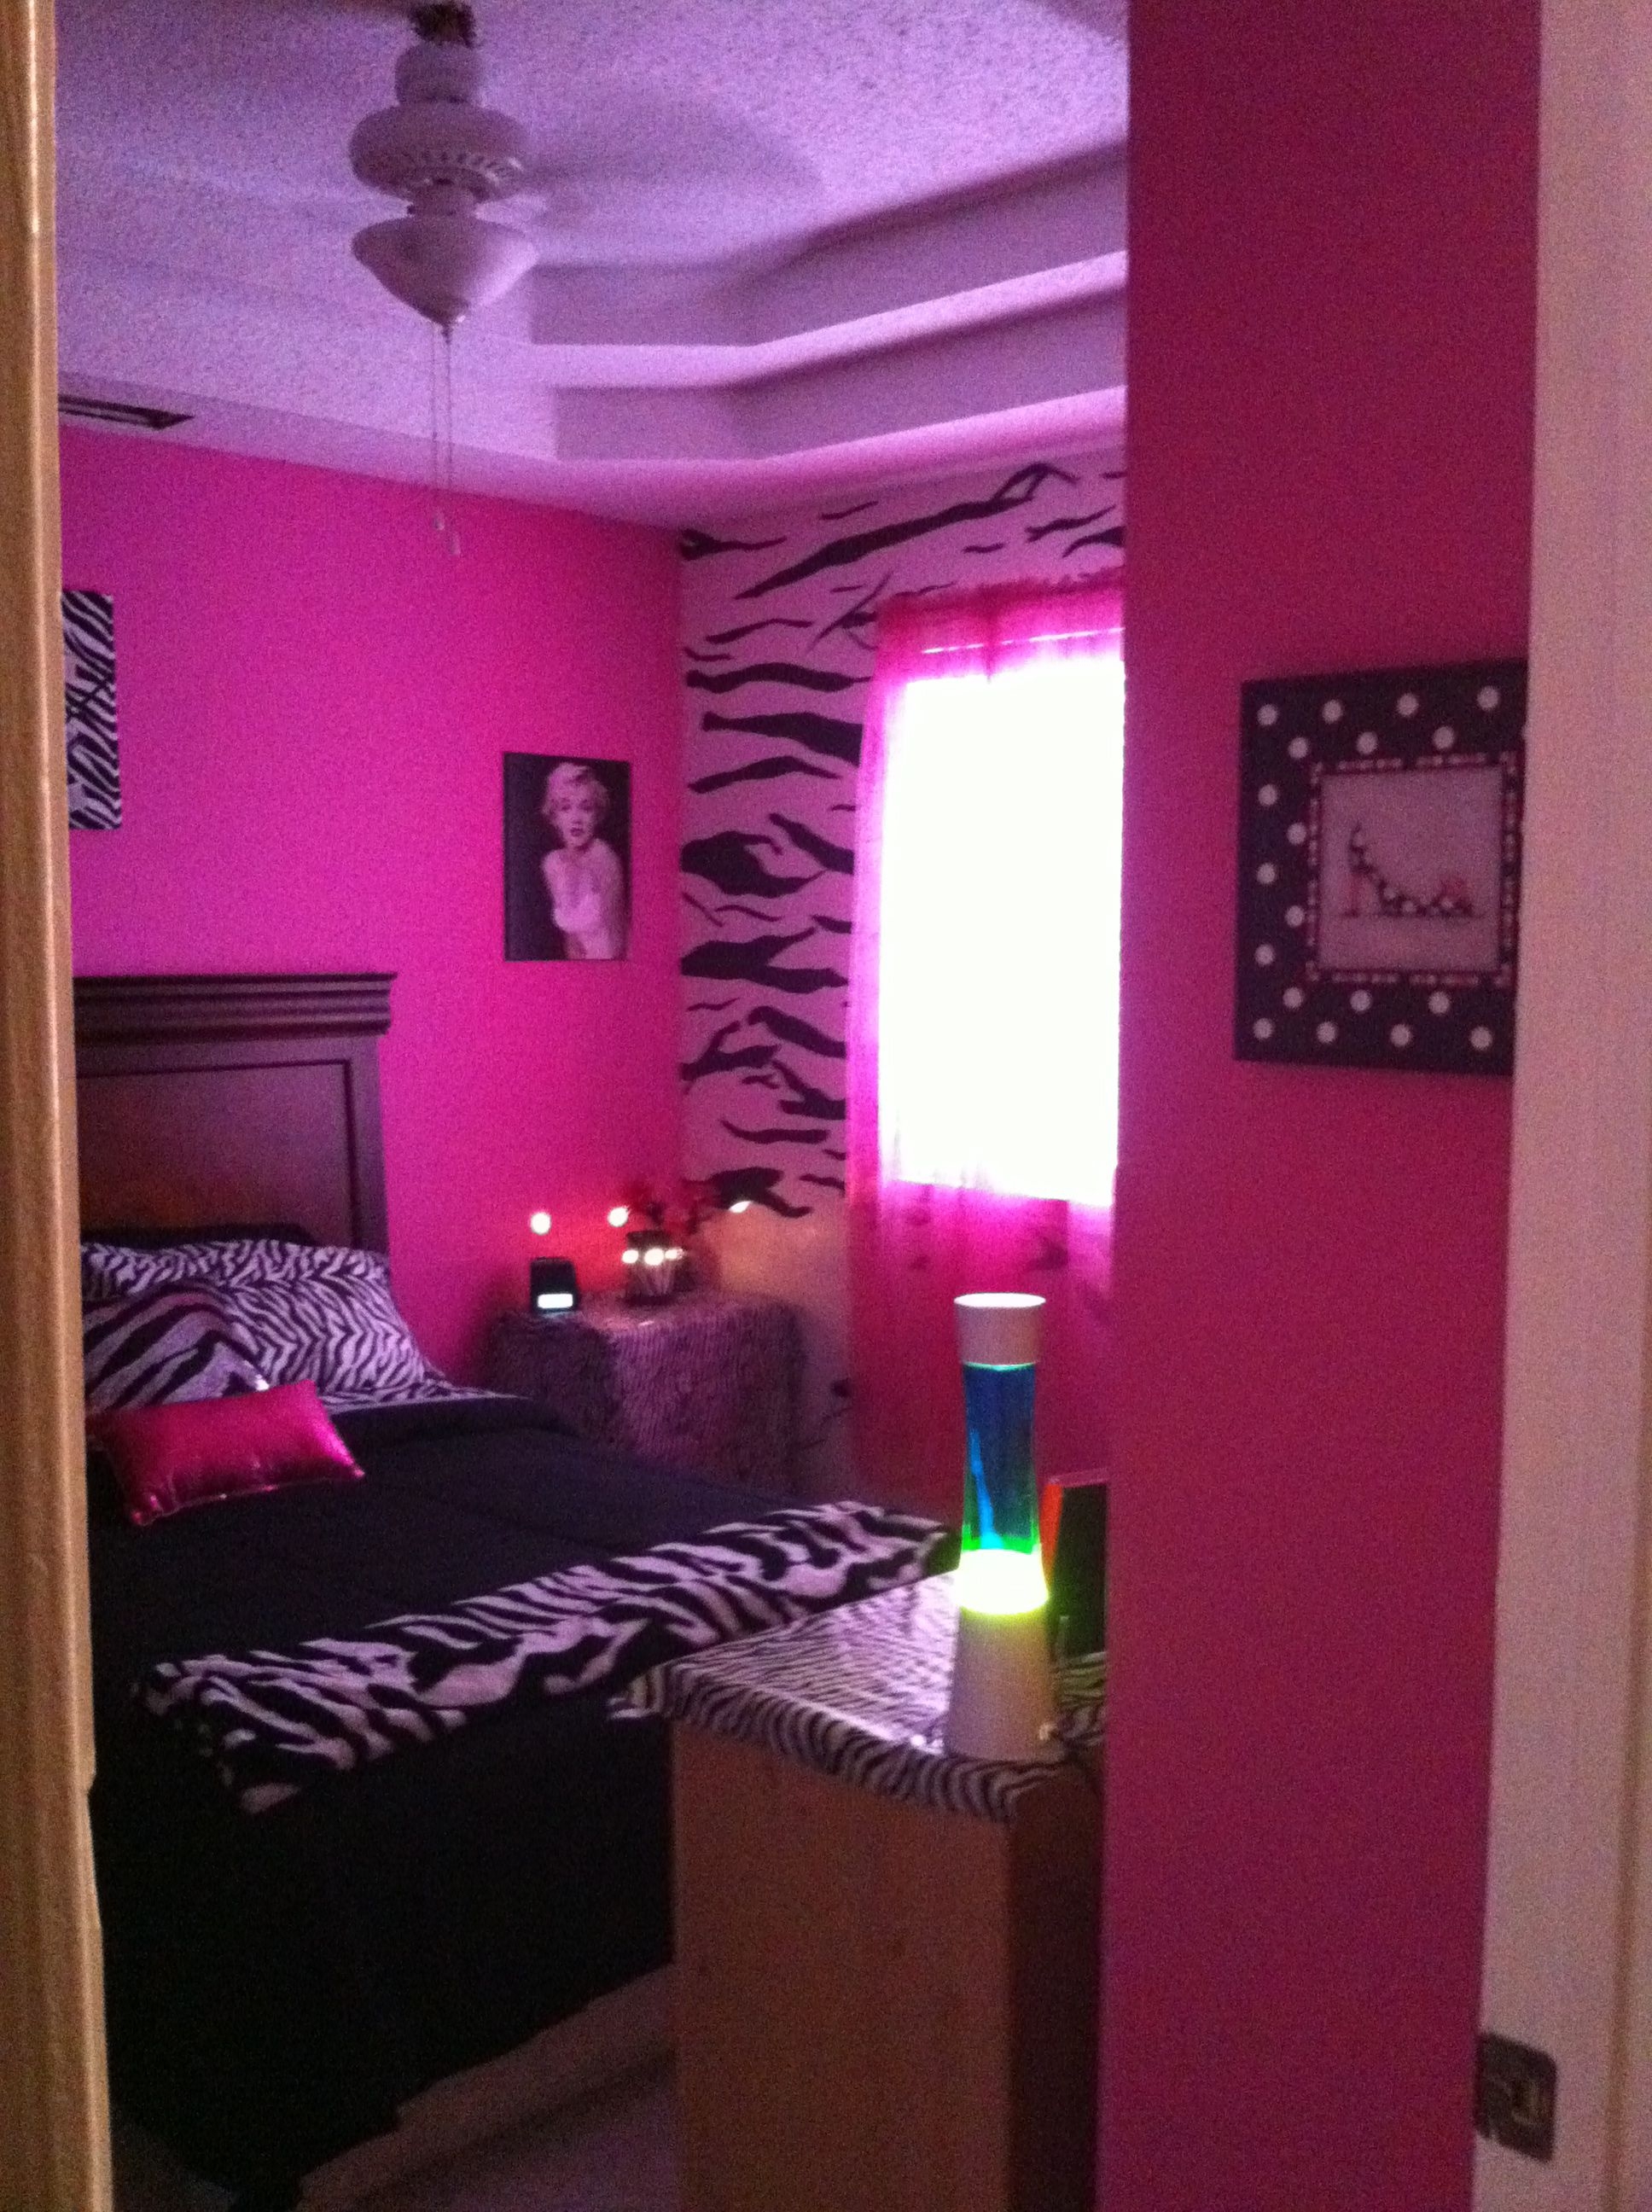 Zebra bedroom décor doesn't sound like the best idea… until you see tasteful examples of zebra print furniture, wall art and rugs in a tastefully decorated bedroom. Carried her sweet 16 design over to her Sweet 16 room. Hot